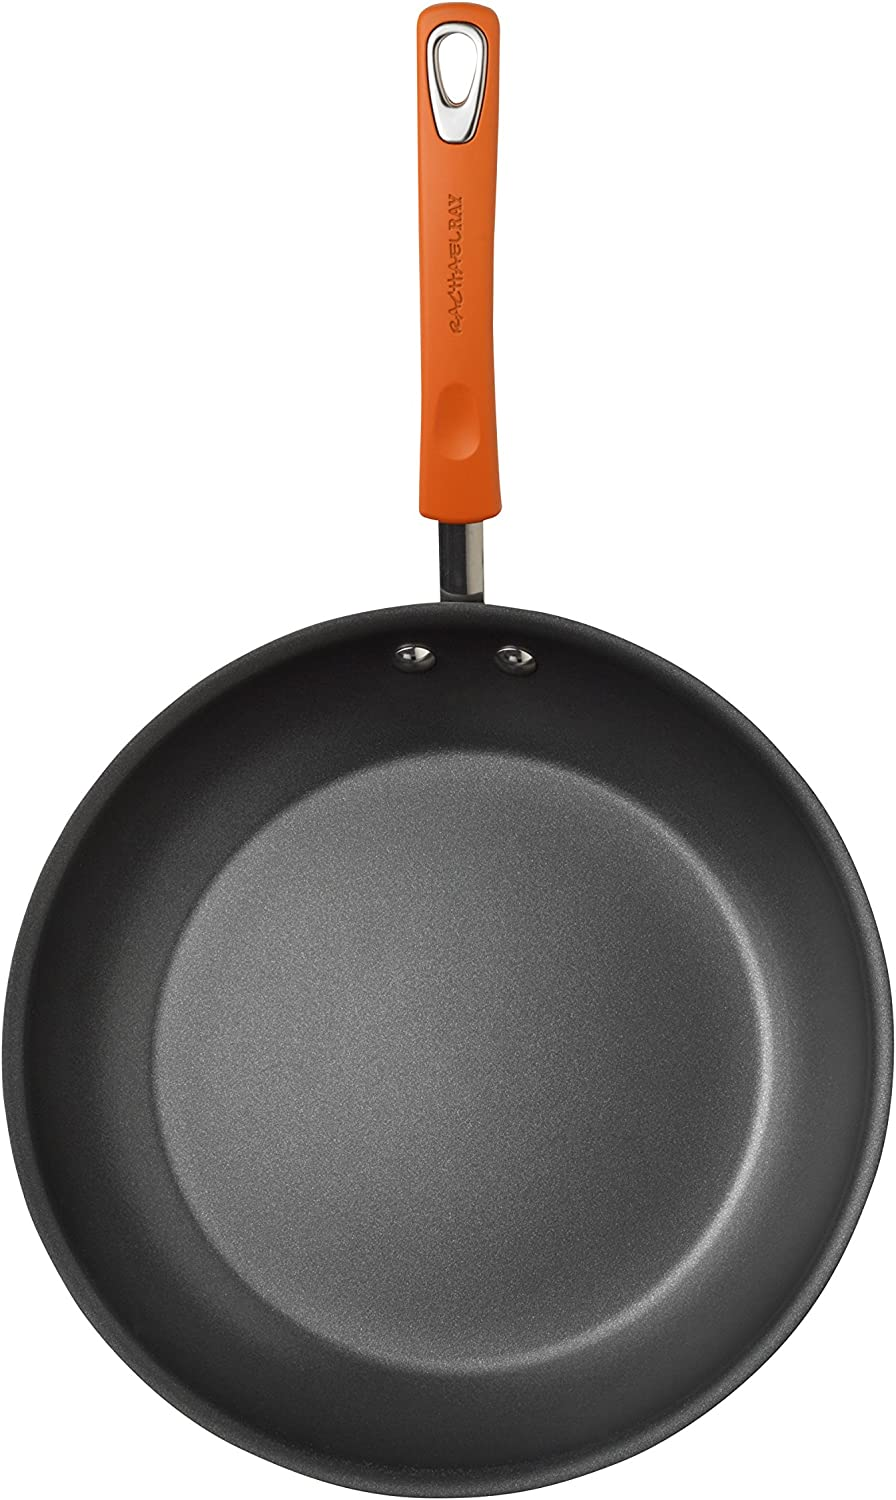 Hard Anodized Nonstick Frying Pan//Fry Pan//Hard Anodized Skillet 8.5 Inch Gray with Orange Handles